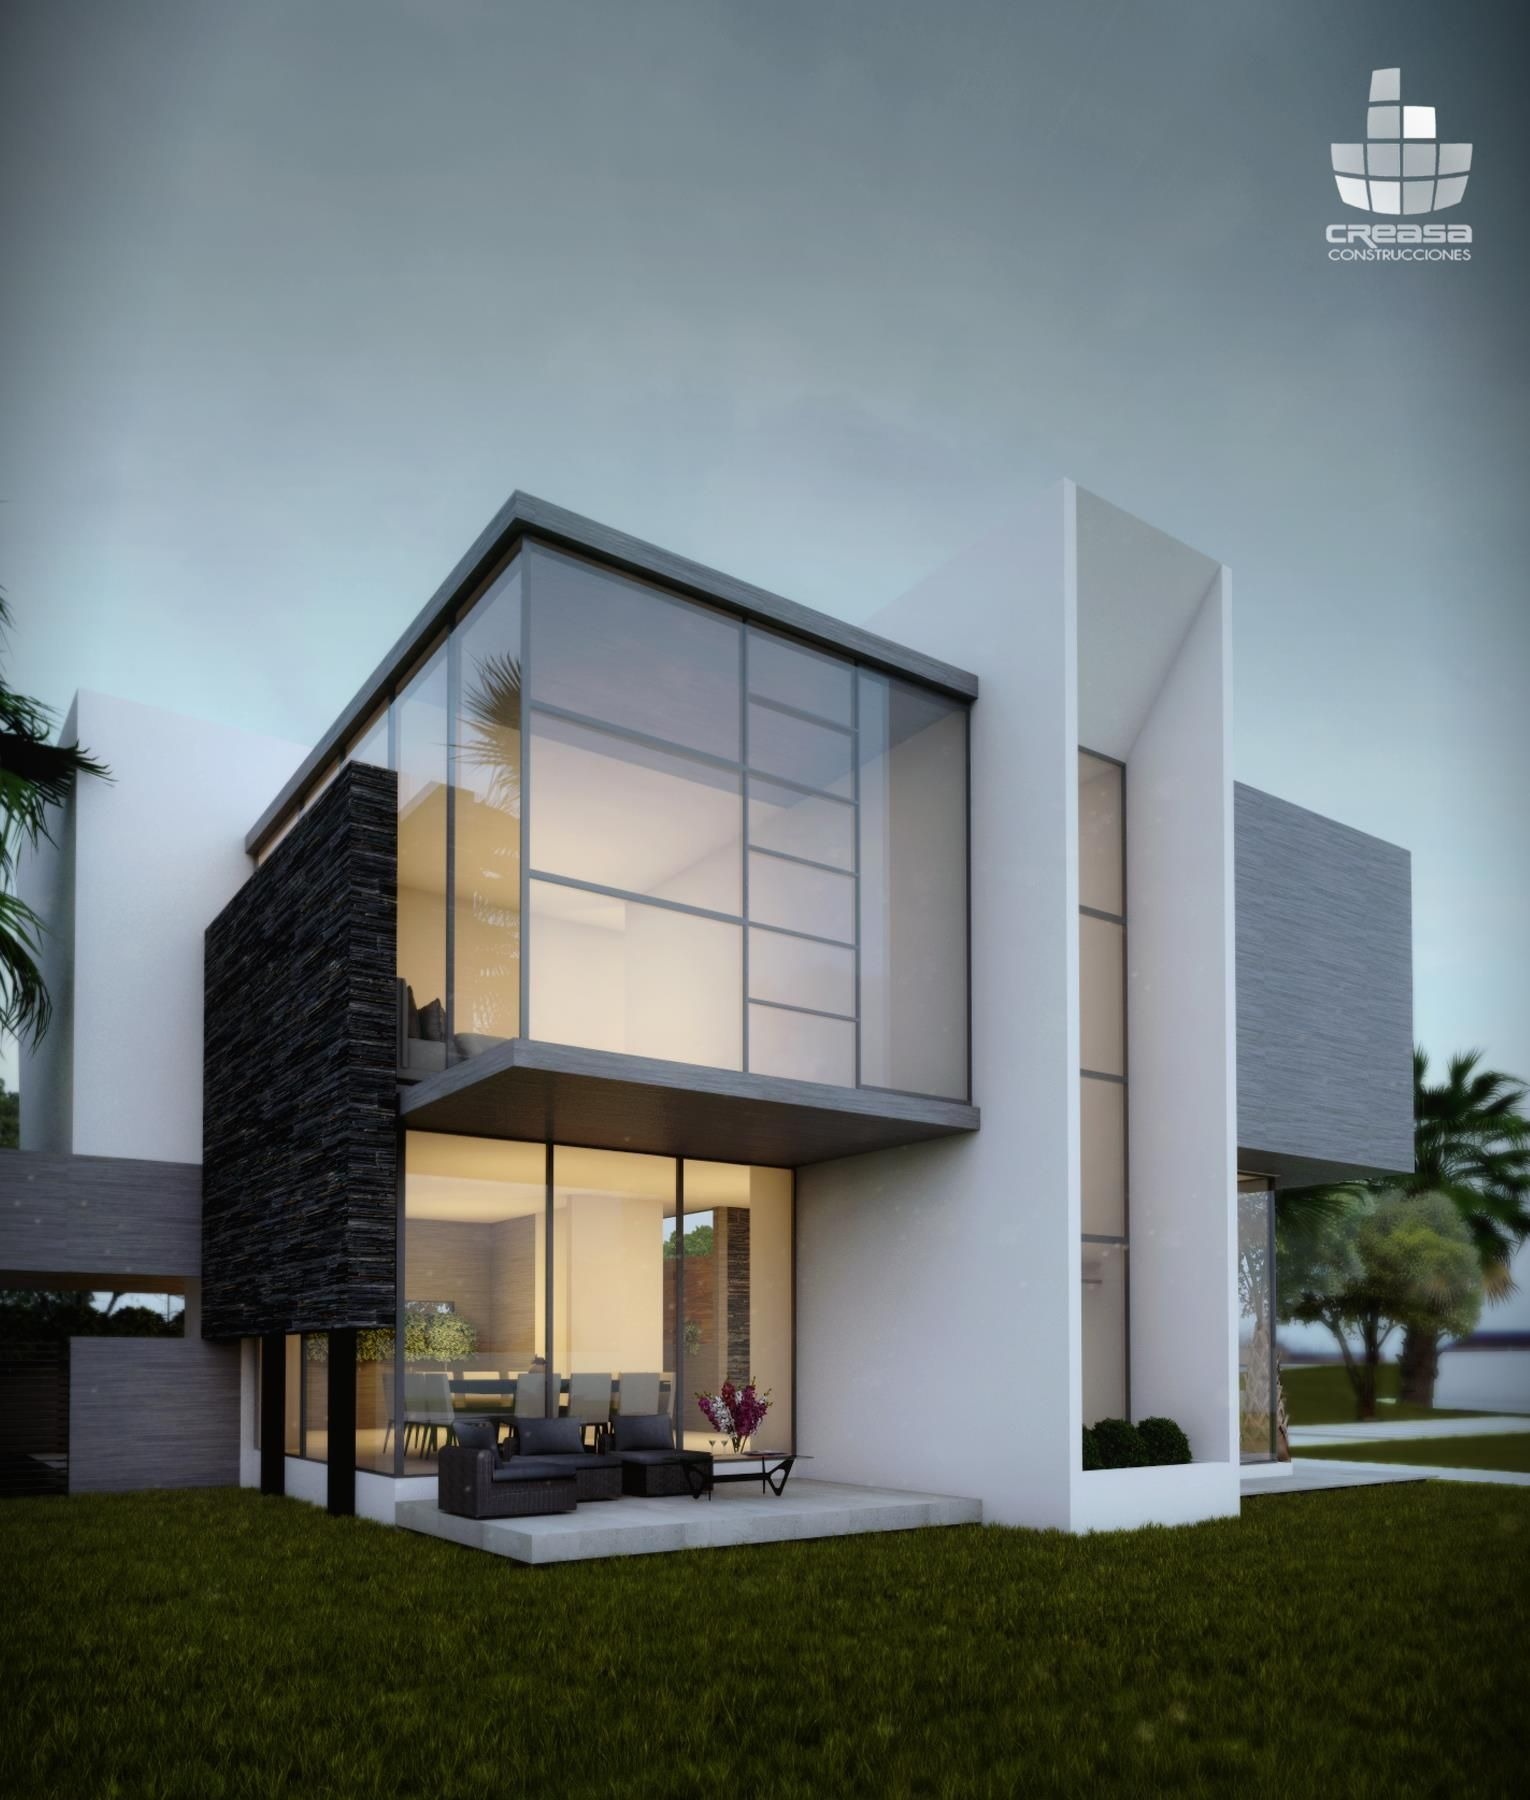 Creasa modern architecture pinterest villas house for Contemporary villa plans